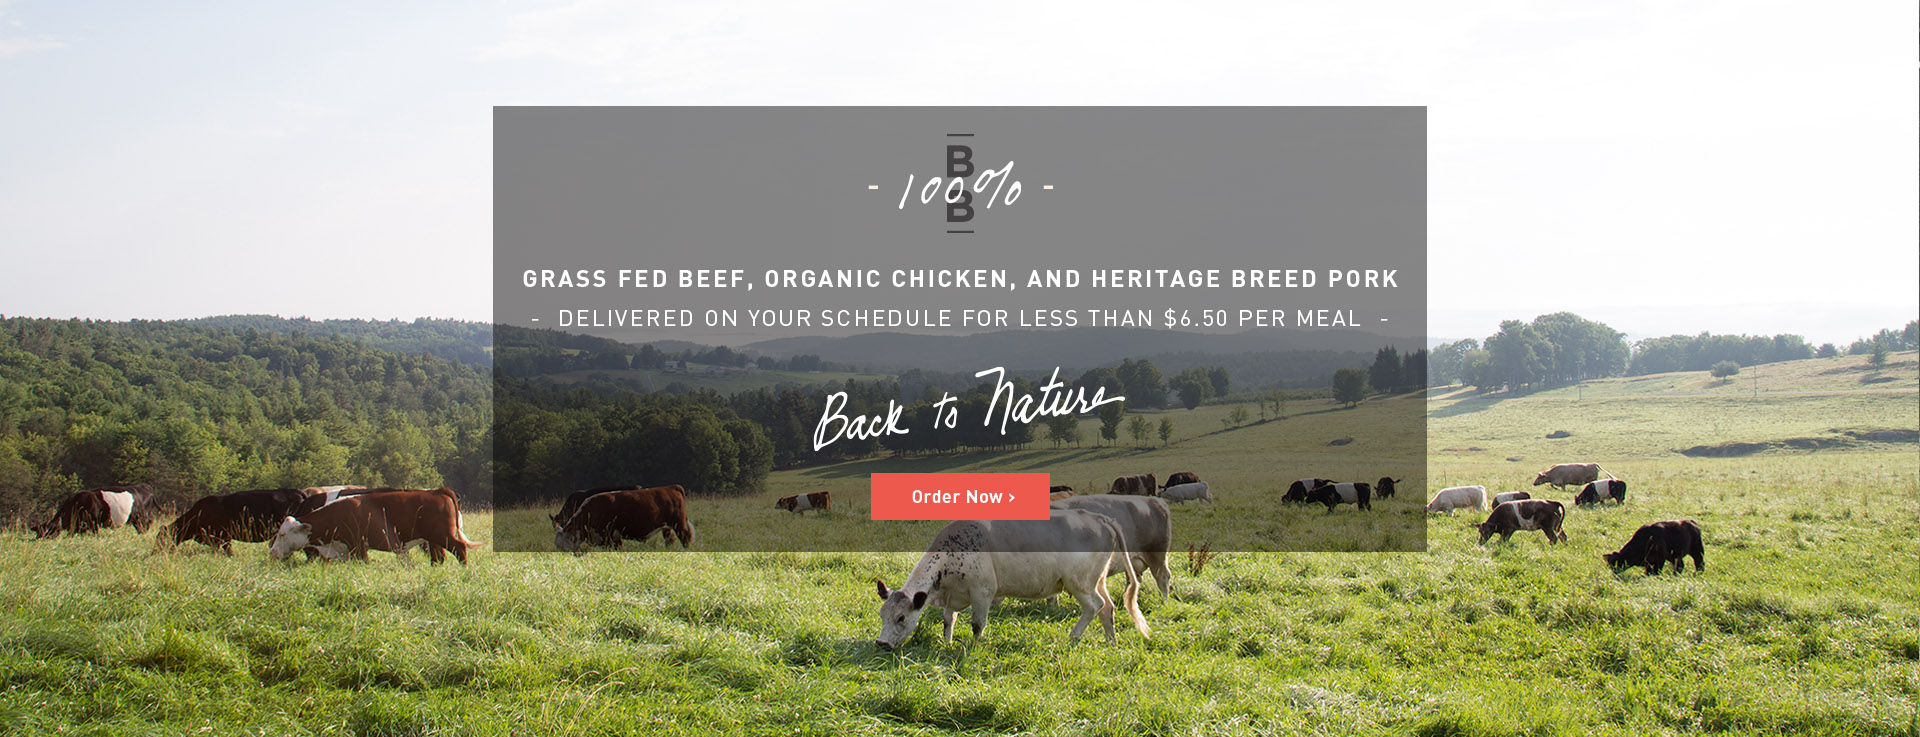 Grass Fed Cattle